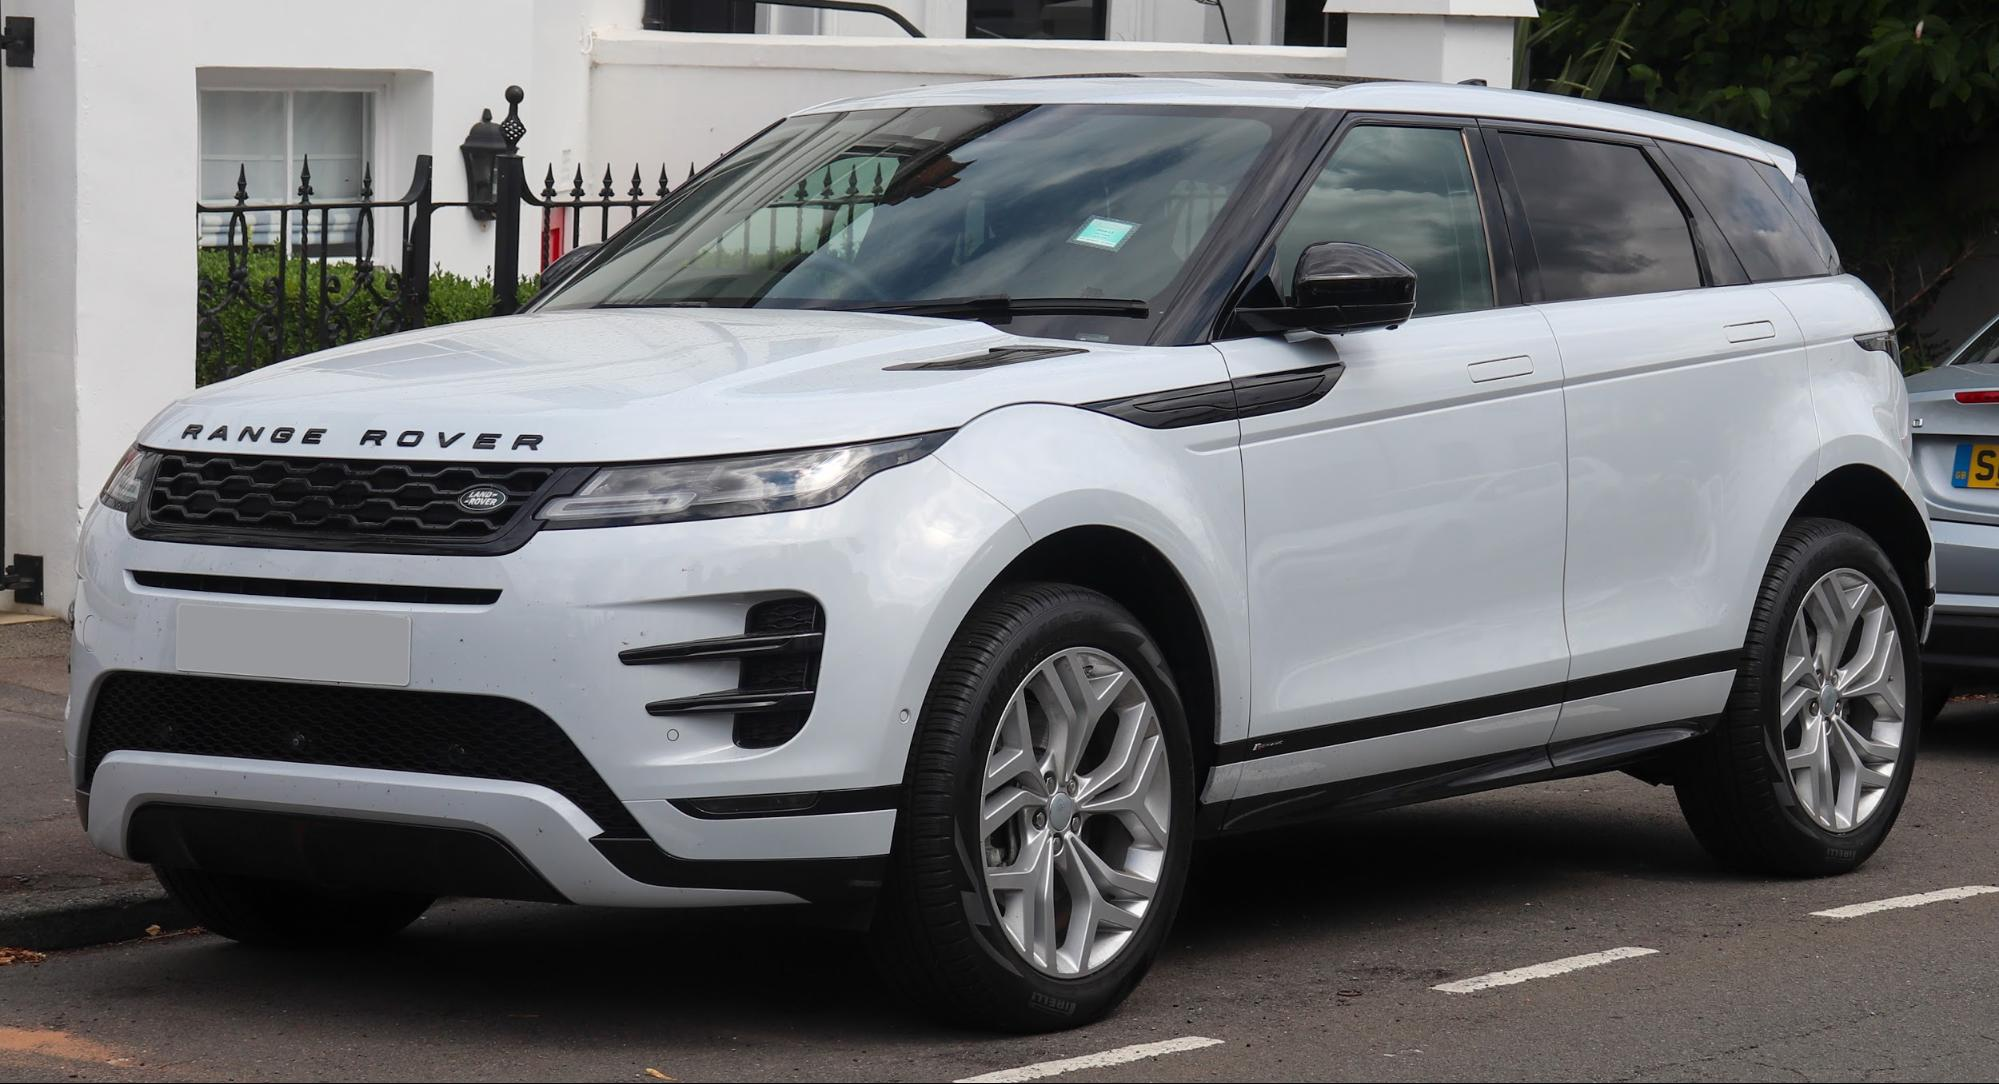 Embedded Operating System - Range Rover Example